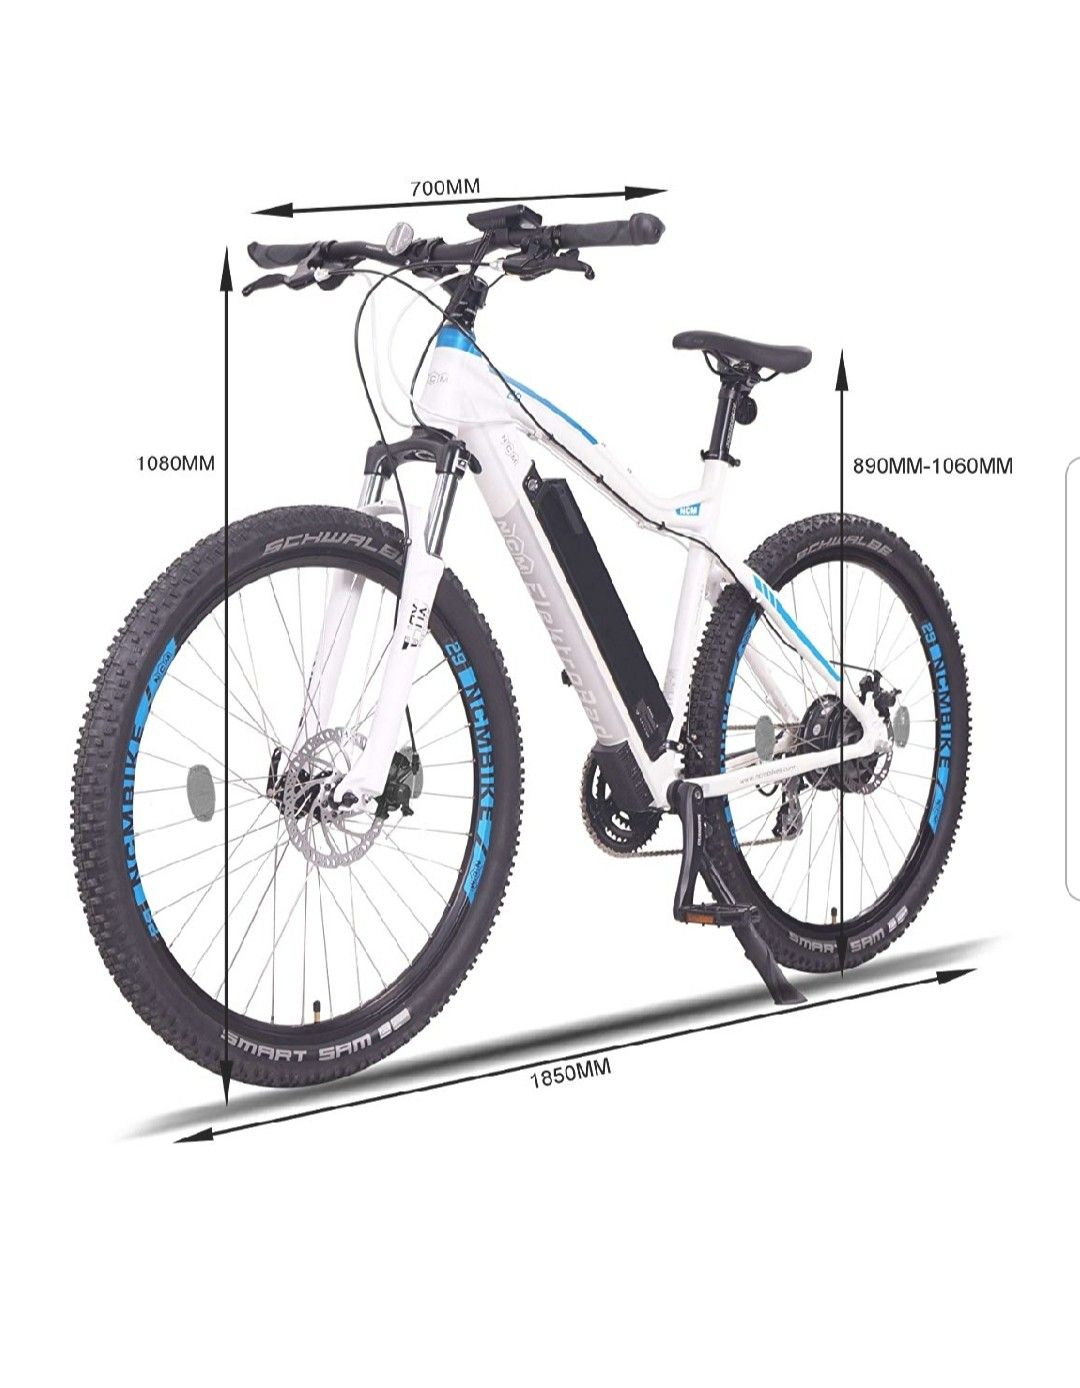 Best Value Electric Bike >> Another Great Value E Bike From Ncm Check My List Of Best Electric